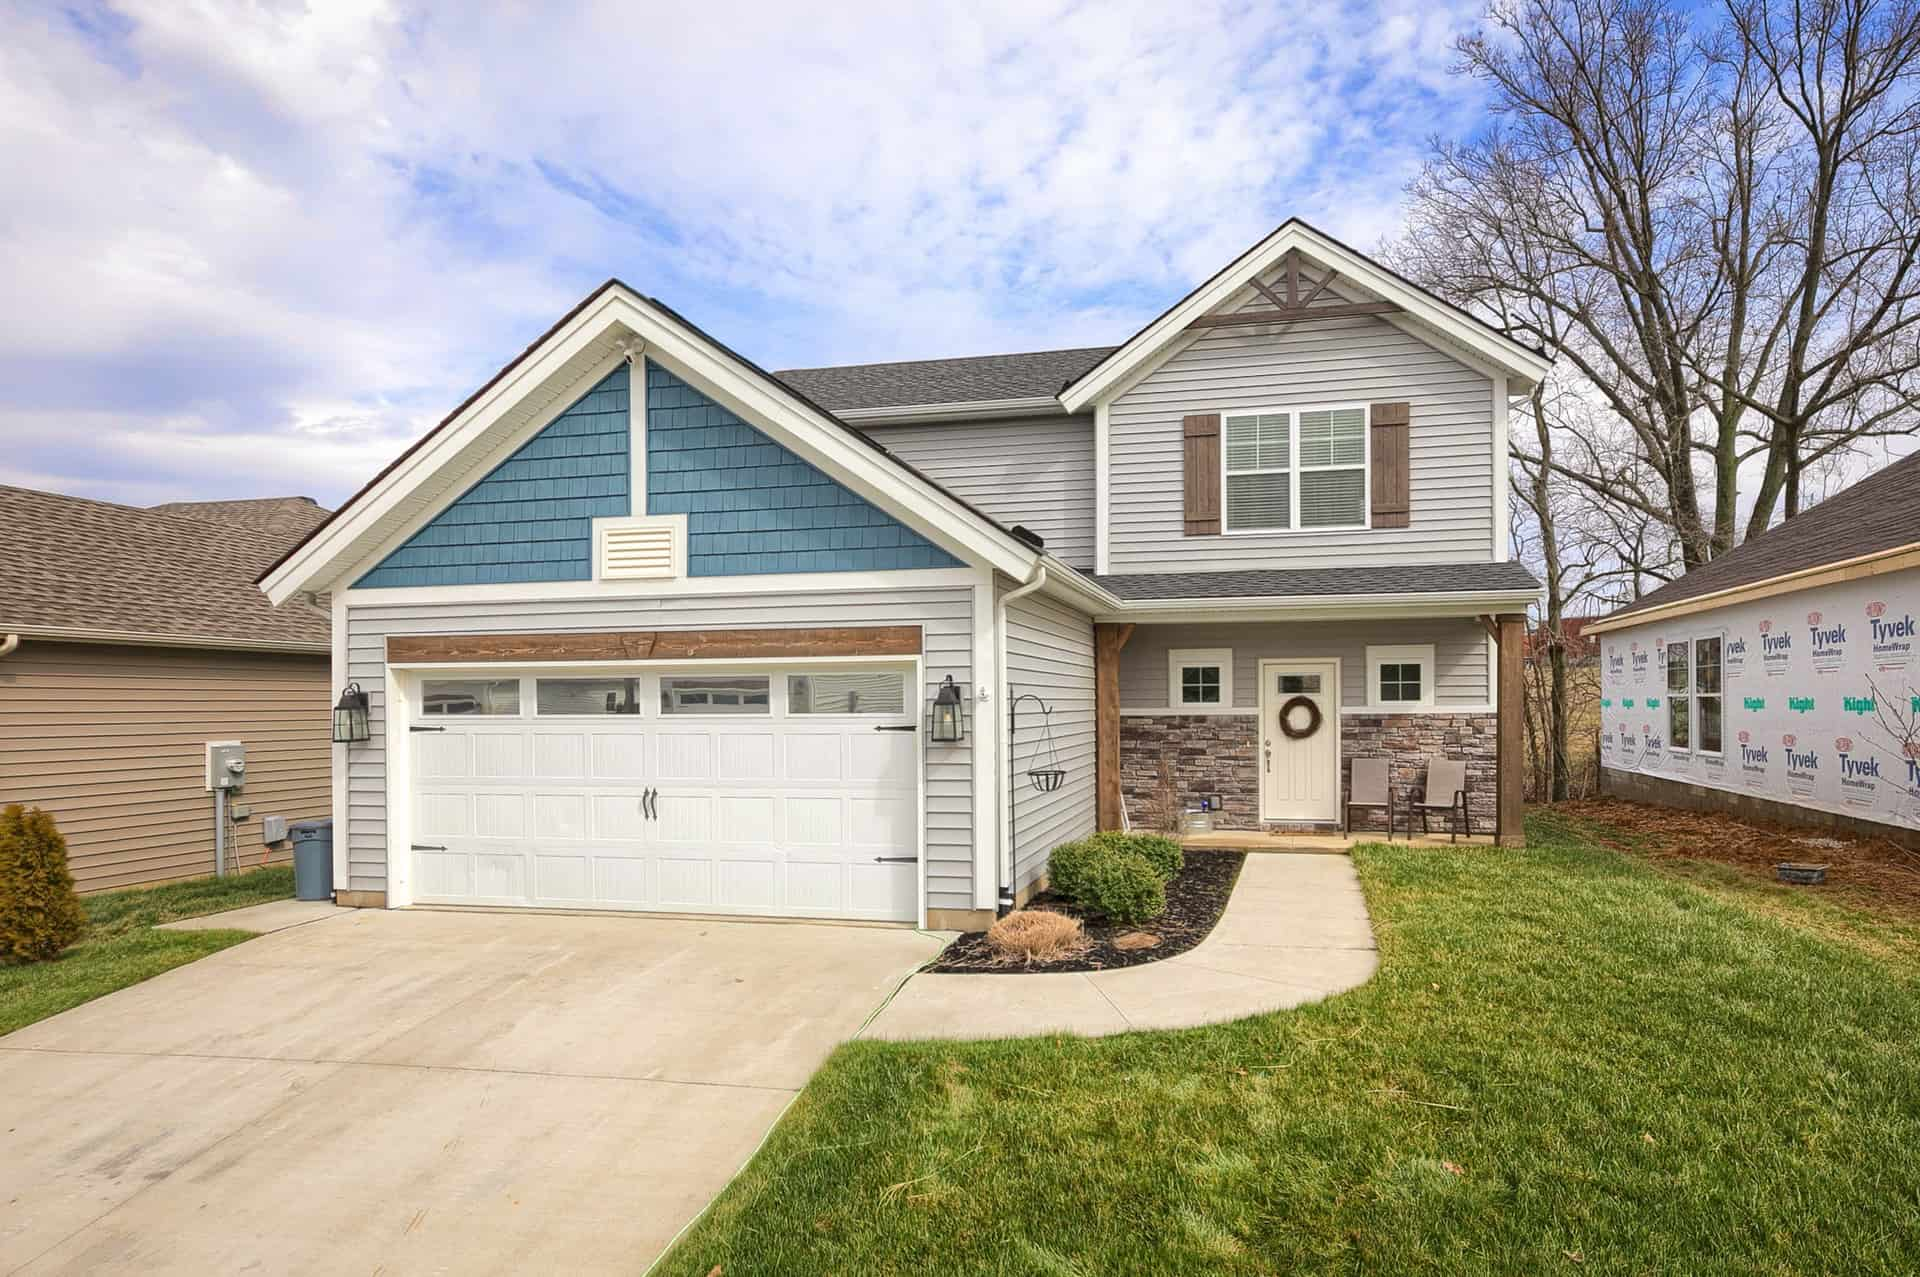 6359 Valley Brook Trace, Utica, KY 42376